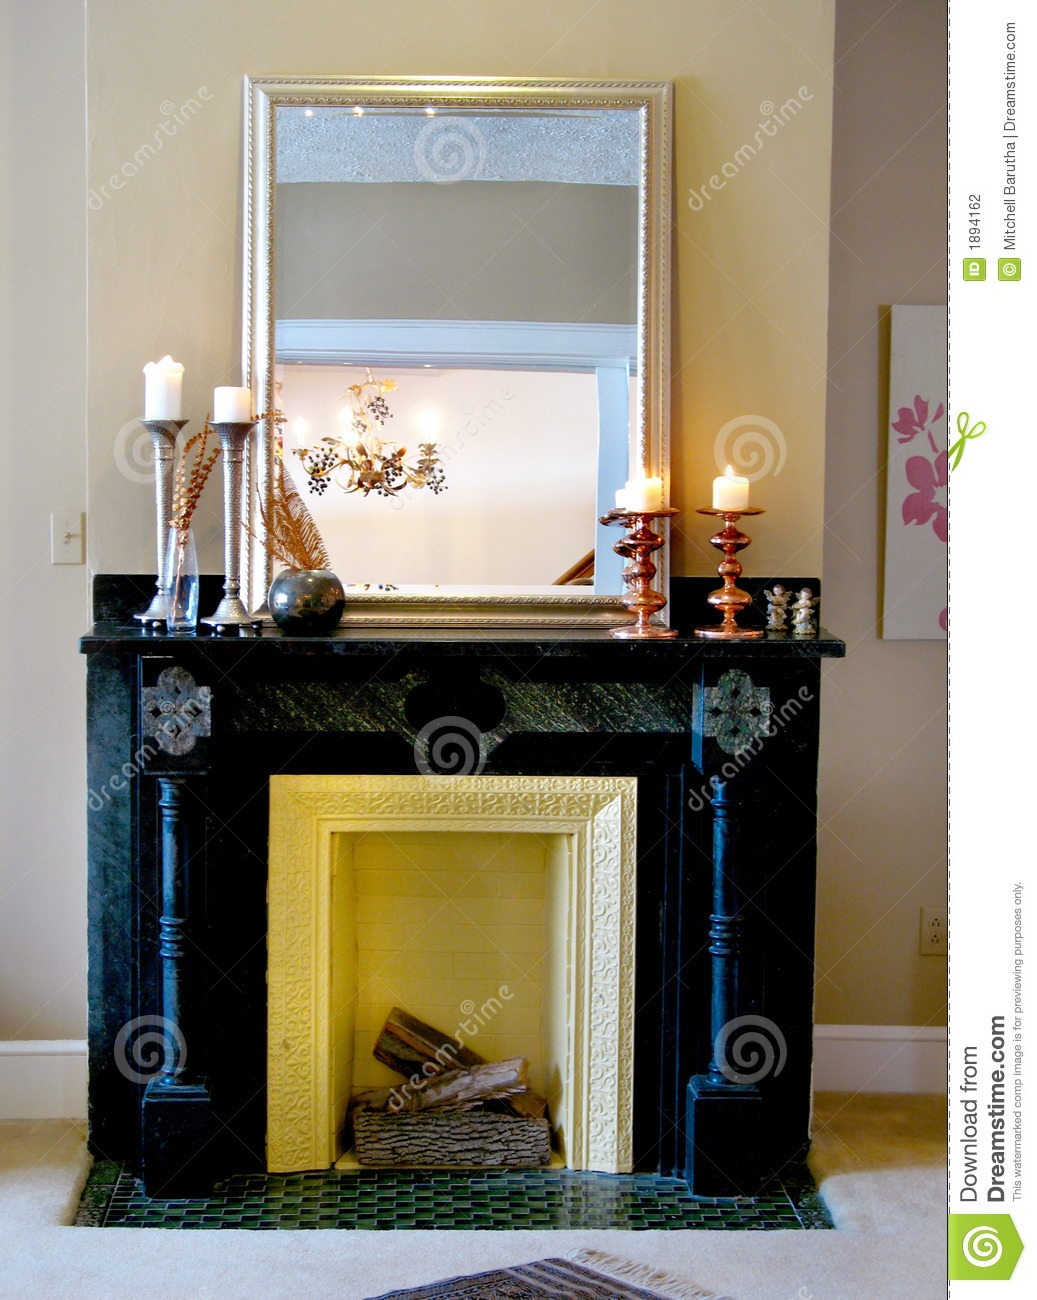 Black Mantle With Mirror Candlesticks Stock Photography Image Pertaining To Mirror For Mantle (Image 5 of 15)